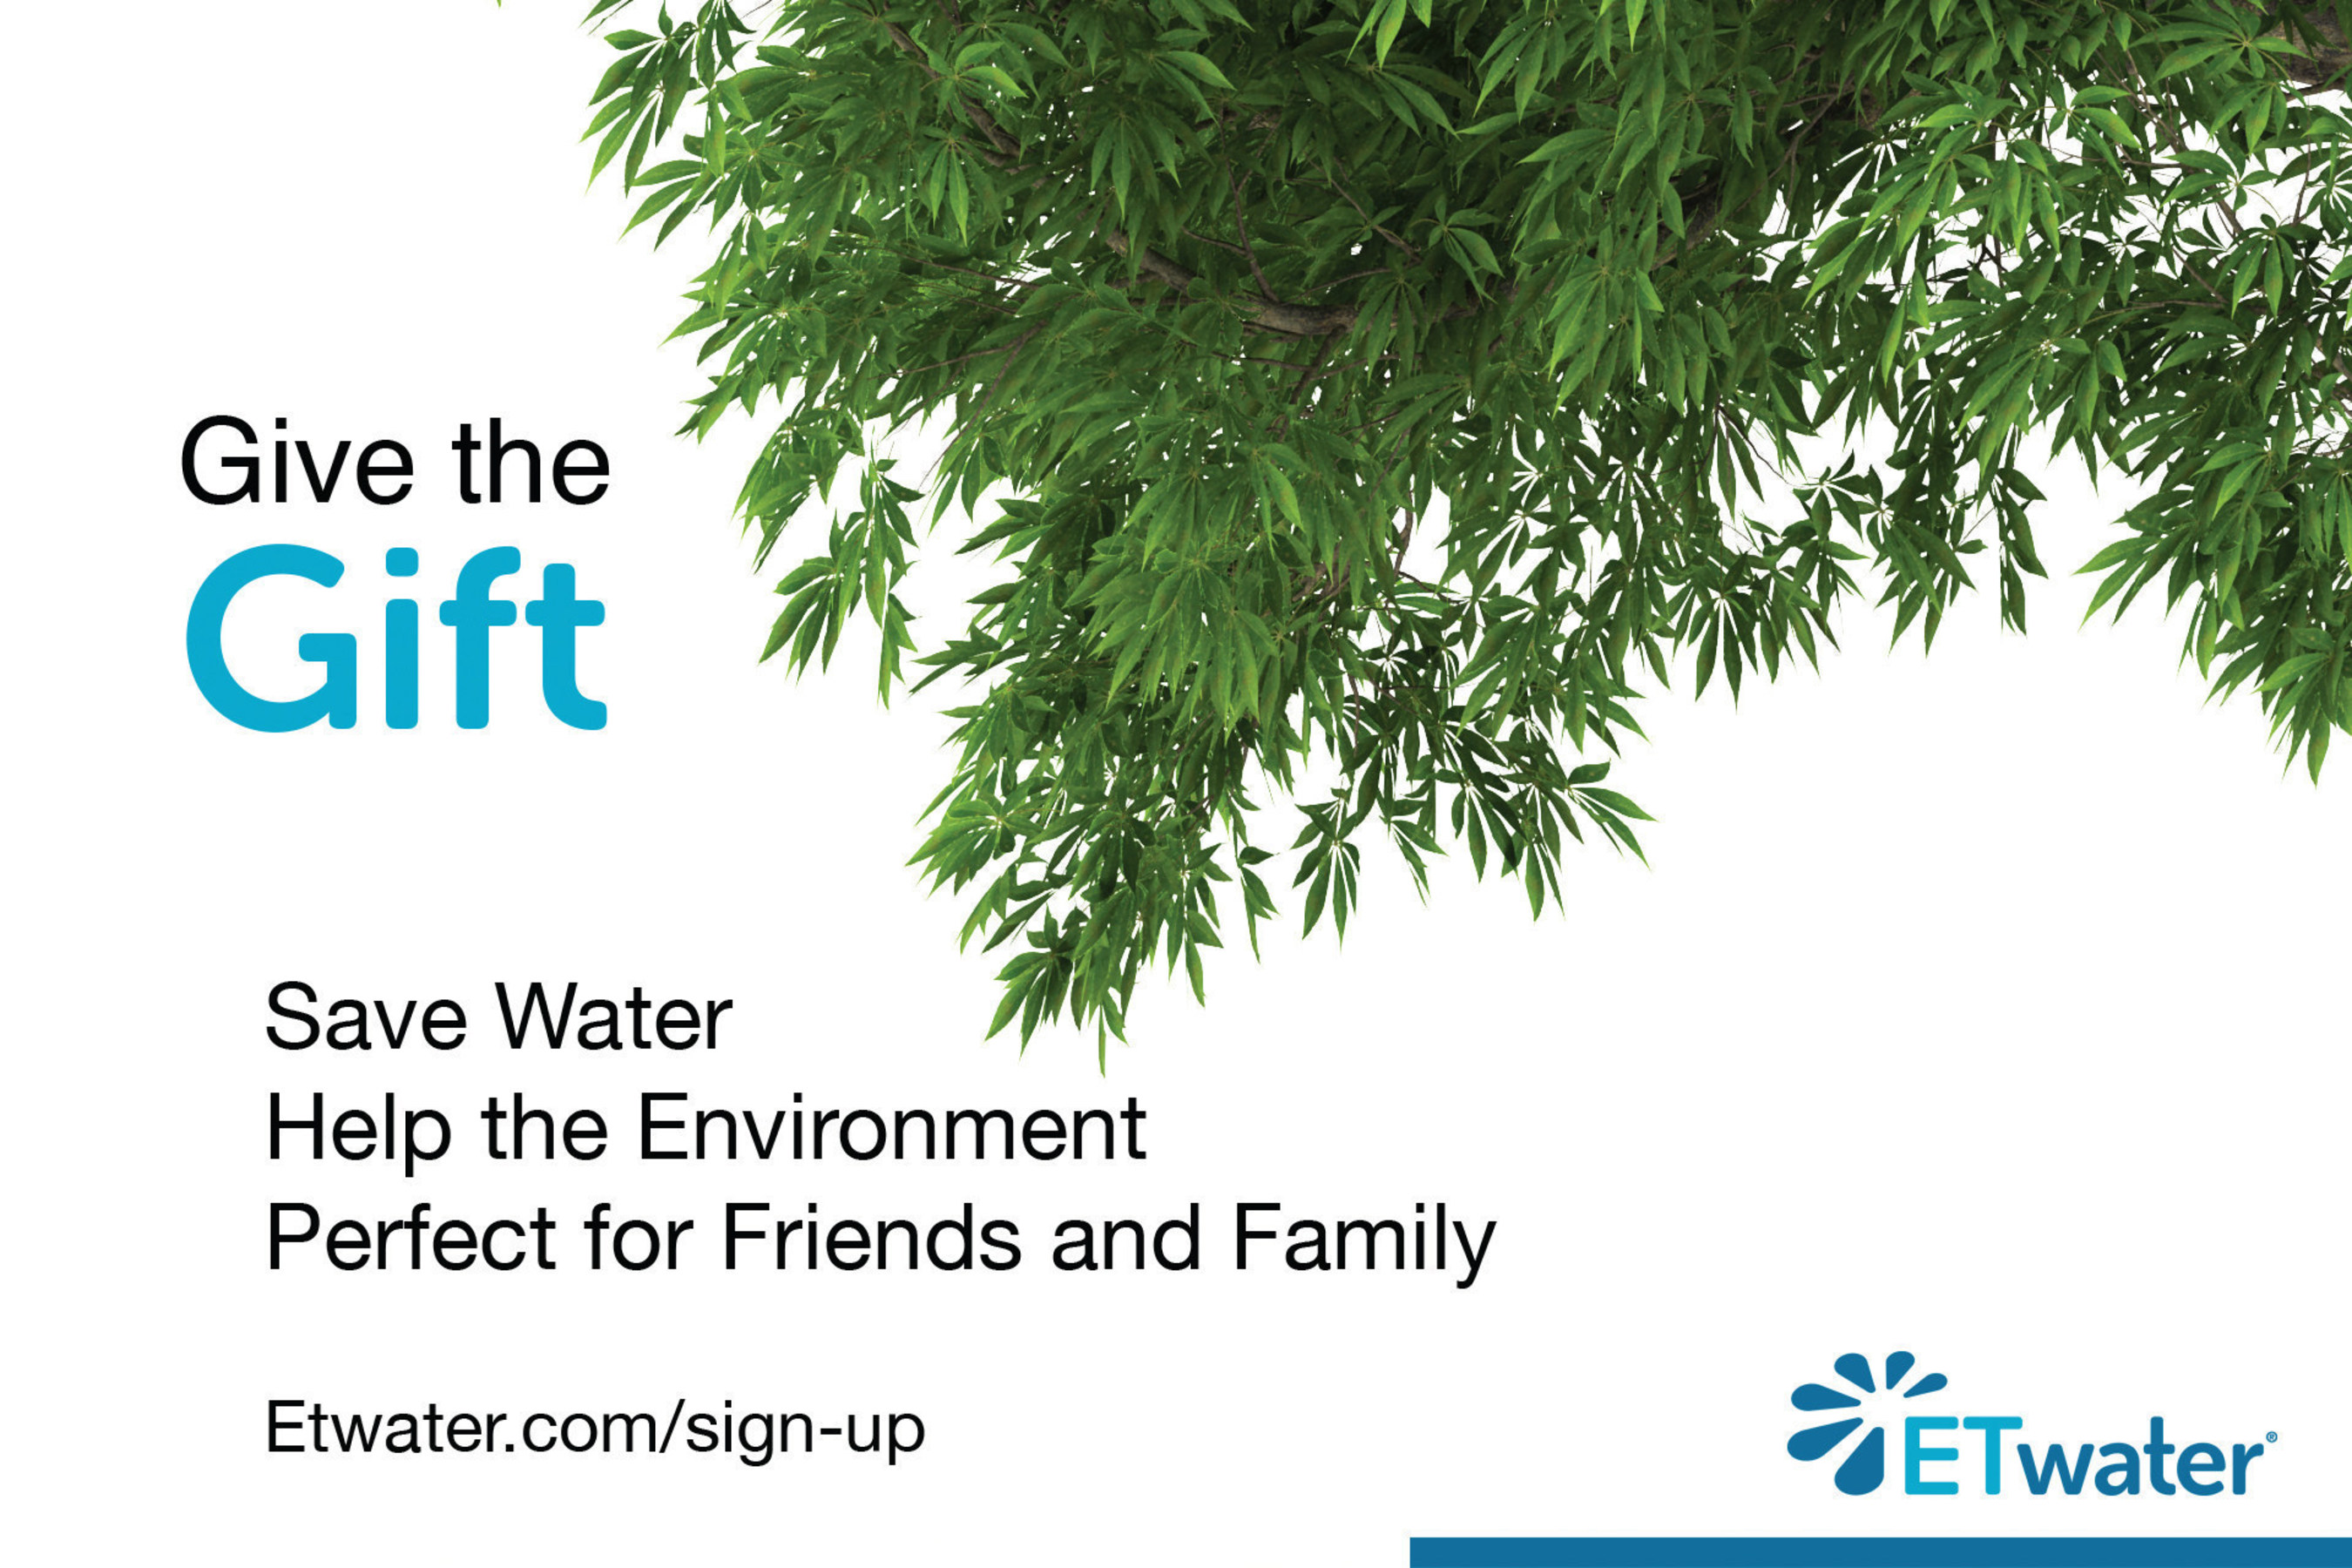 ETwater Offers the Gift of Water Conservation in Cyber Monday Special